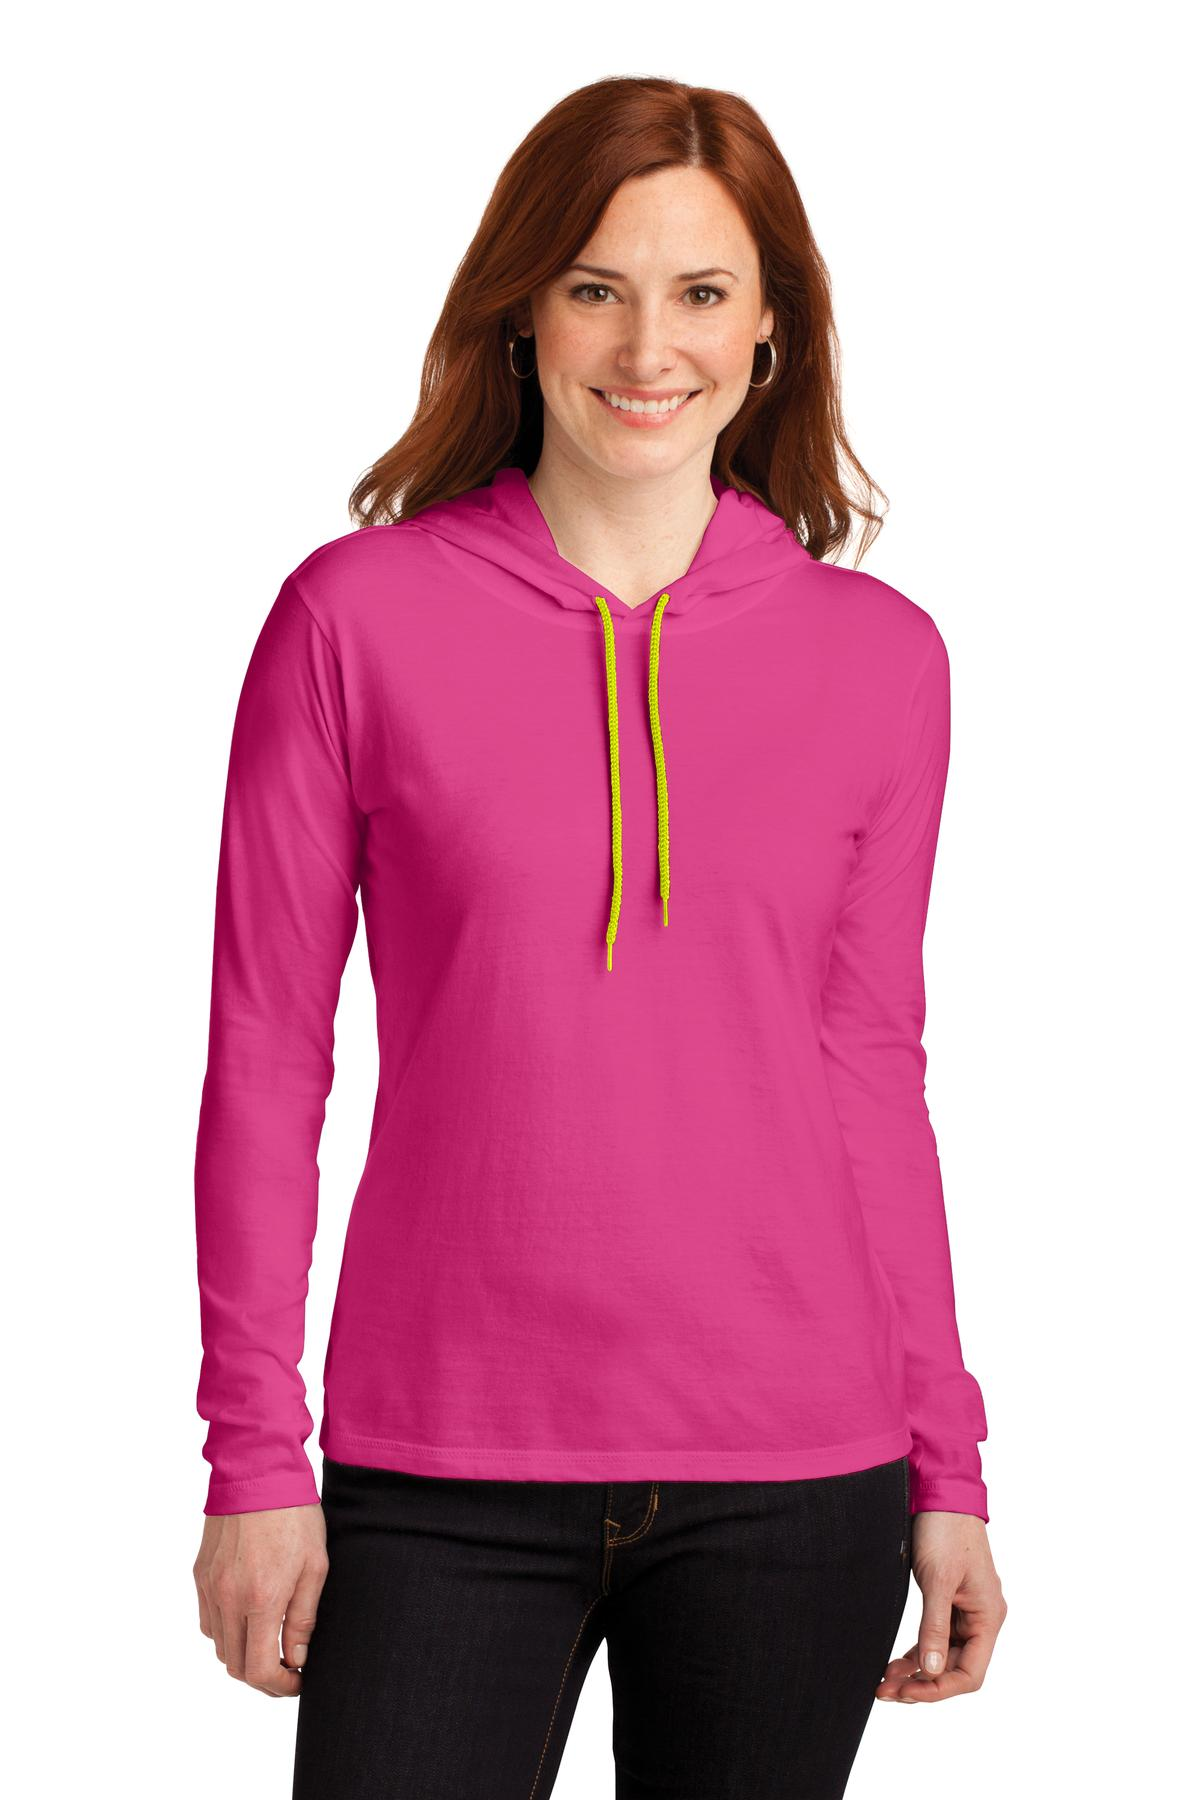 Anvil ®  Ladies 100% Combed Ring Spun Cotton Long Sleeve Hooded T-Shirt. 887L - Hot Pink/ Neon Yellow